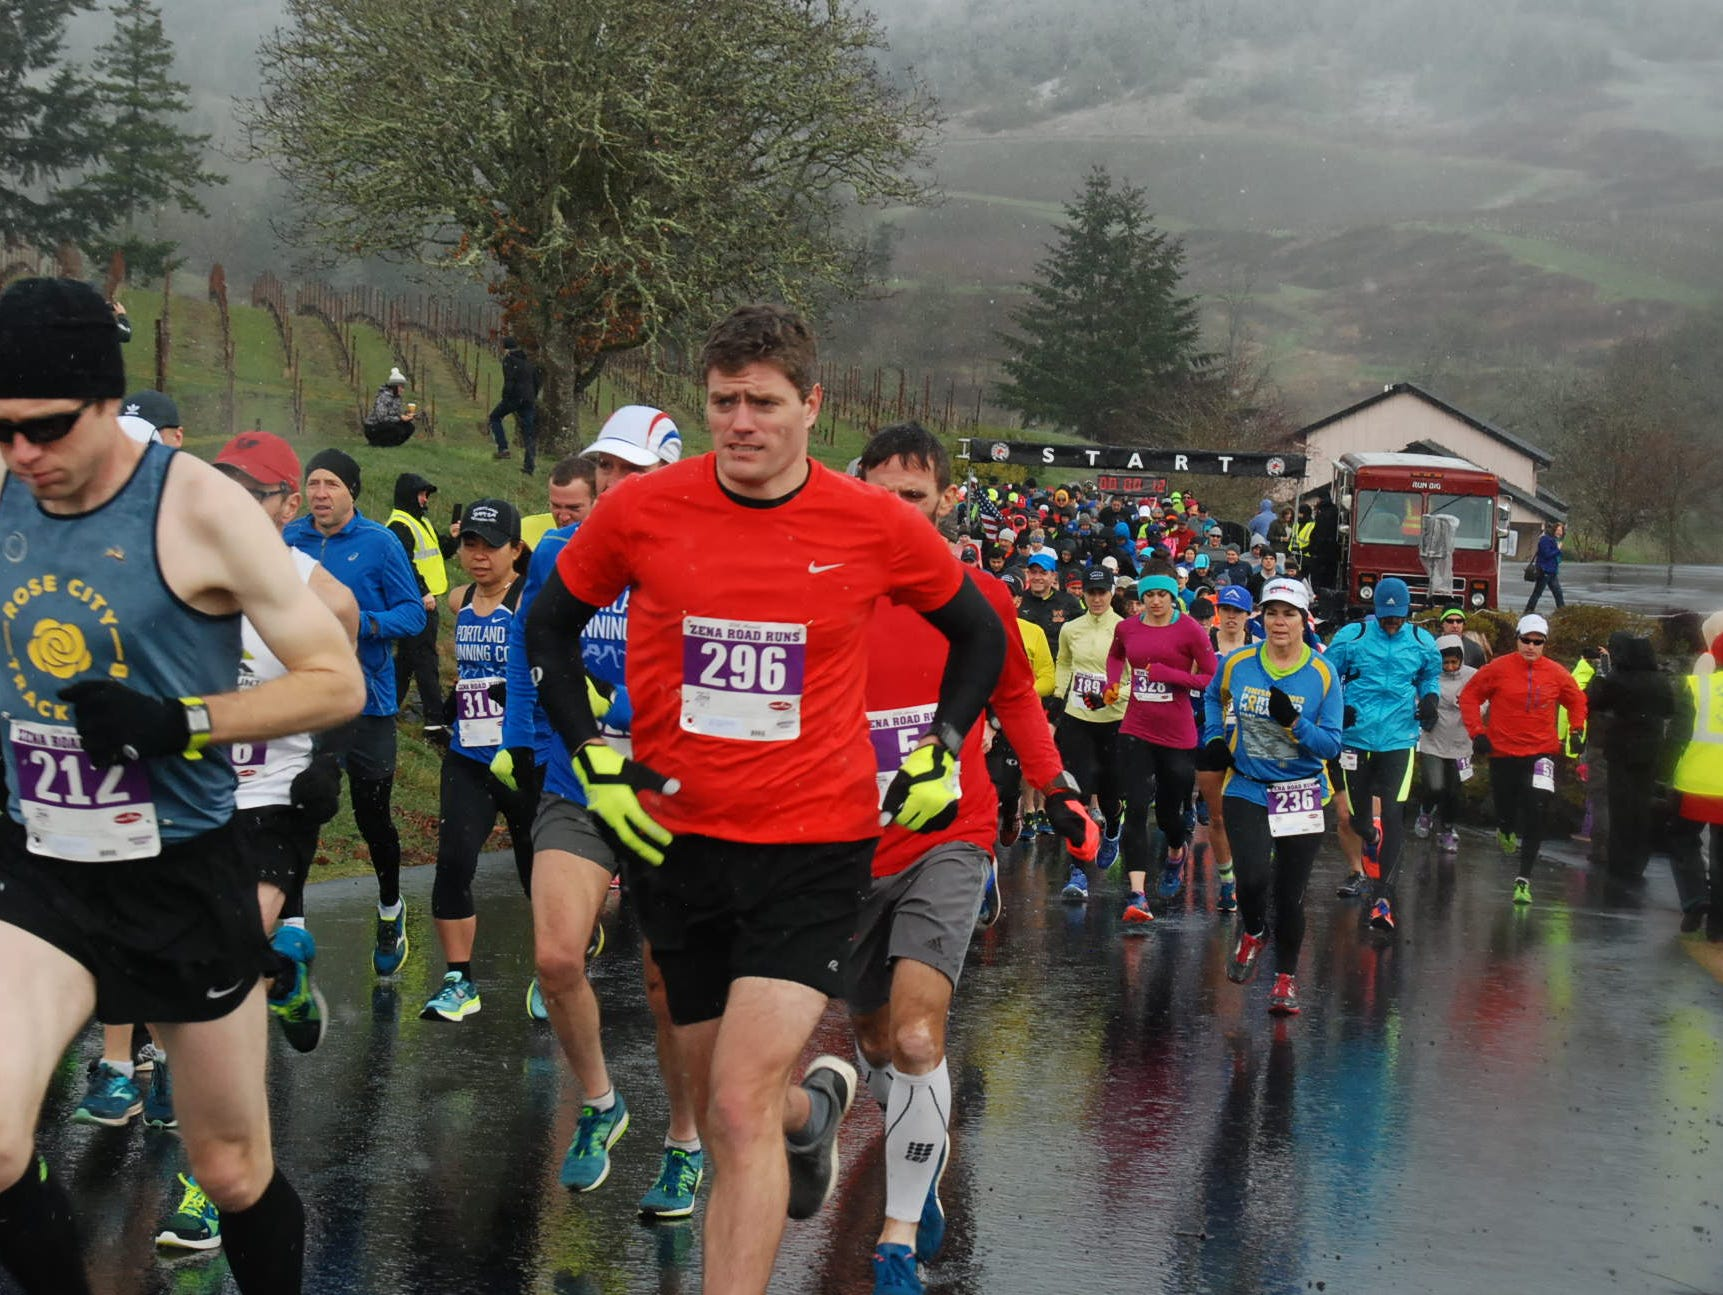 51st Annual Zena Road Runs: A 15K, six-mile or three-mile runthrough theEola-Amity Hills ending with wine for those ages 21 and older, 10 a.m. to 1 p.m. Sunday, Feb. 17,Noble Mountain Tree Farm, 5115 Bethel Heights Road NW. $45, prices increase after Feb. 13.https://runsignup.com/zenaroadruns.